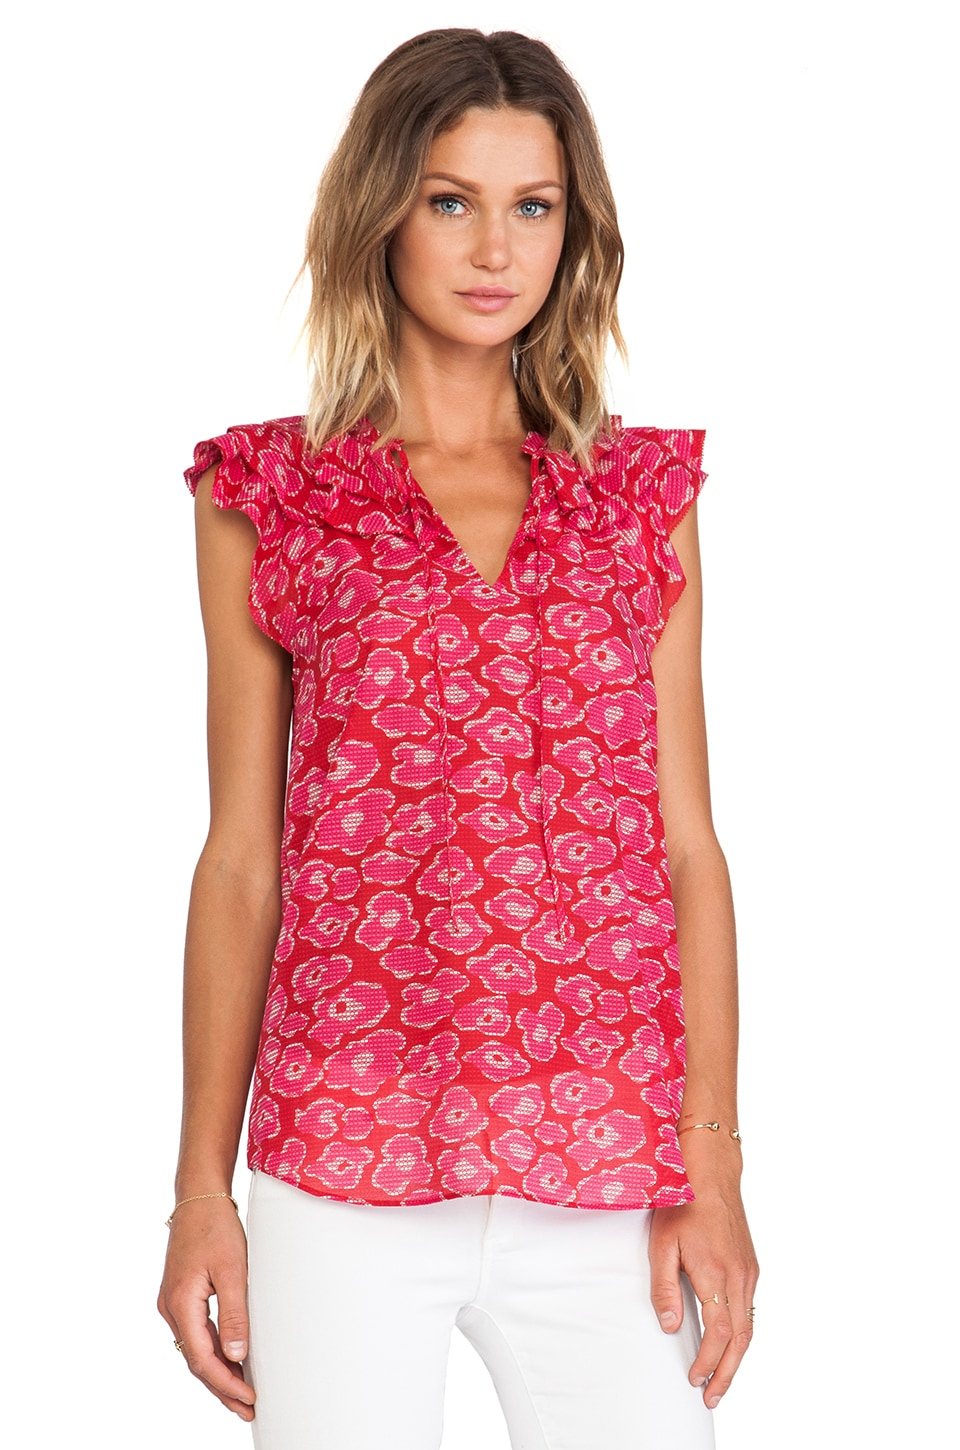 Marc by Marc Jacobs Cas Print Top in Pompeii Red Multi